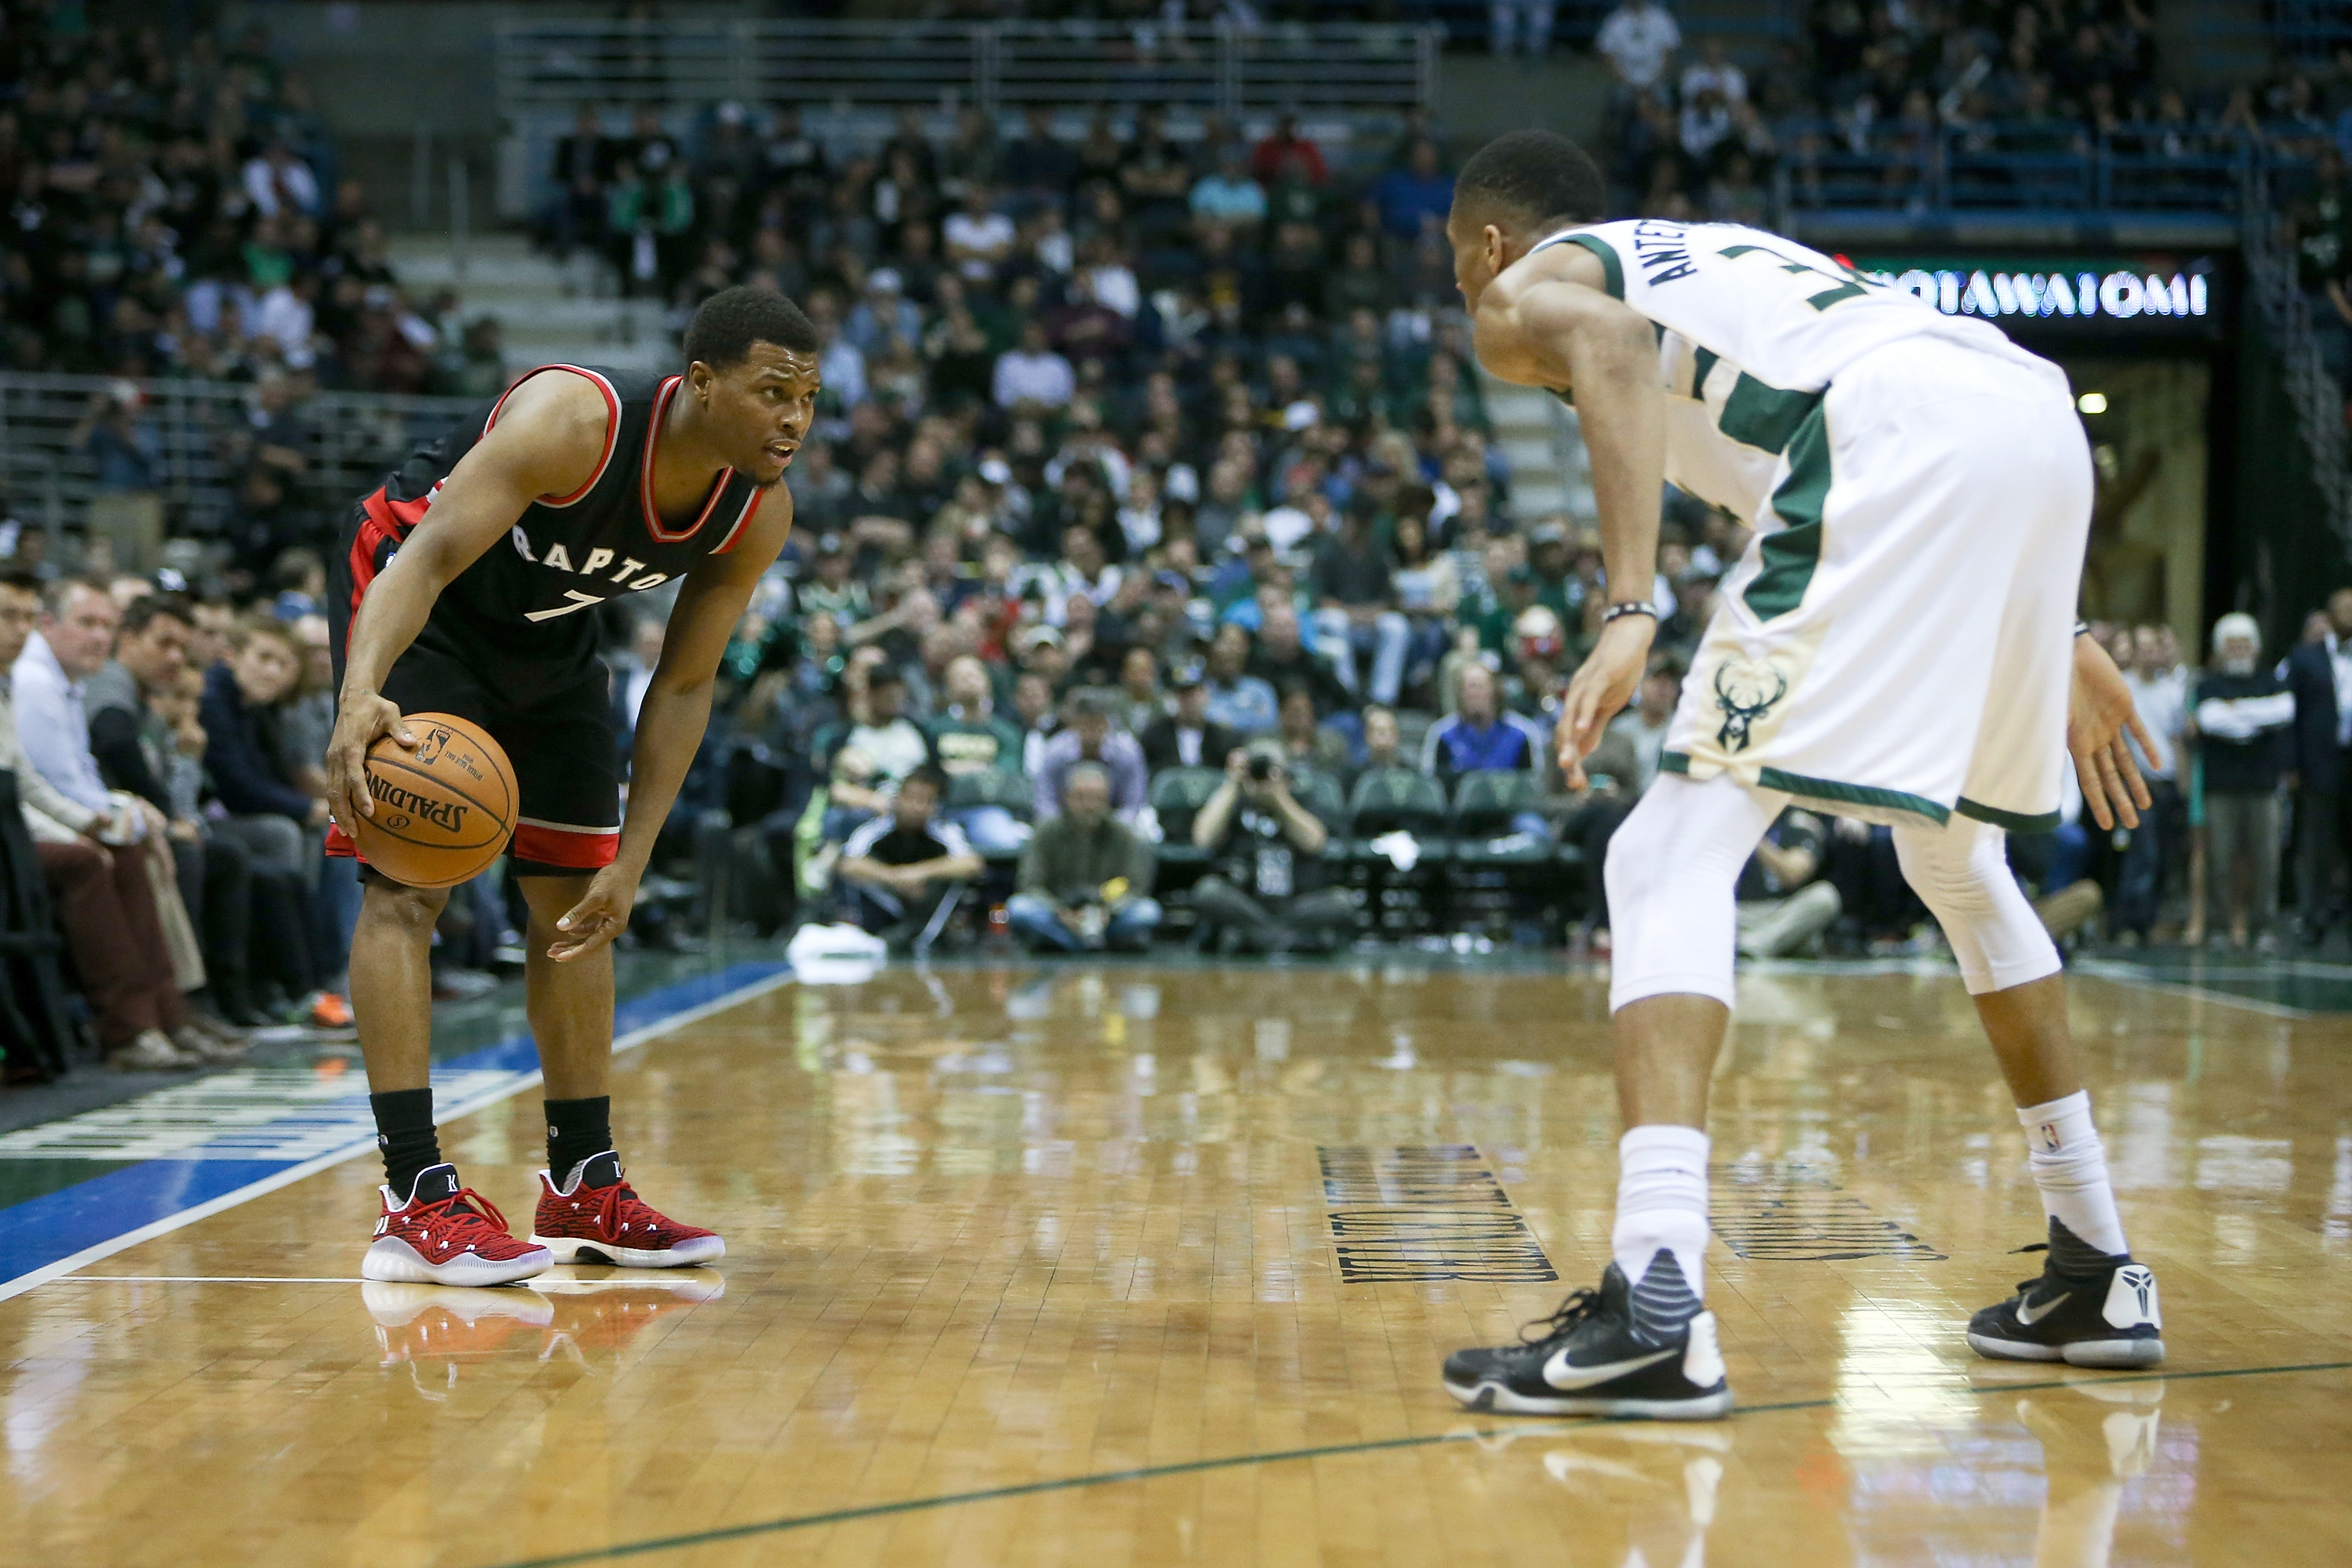 DeRozan explodes for 52 points in OT win against Bucks